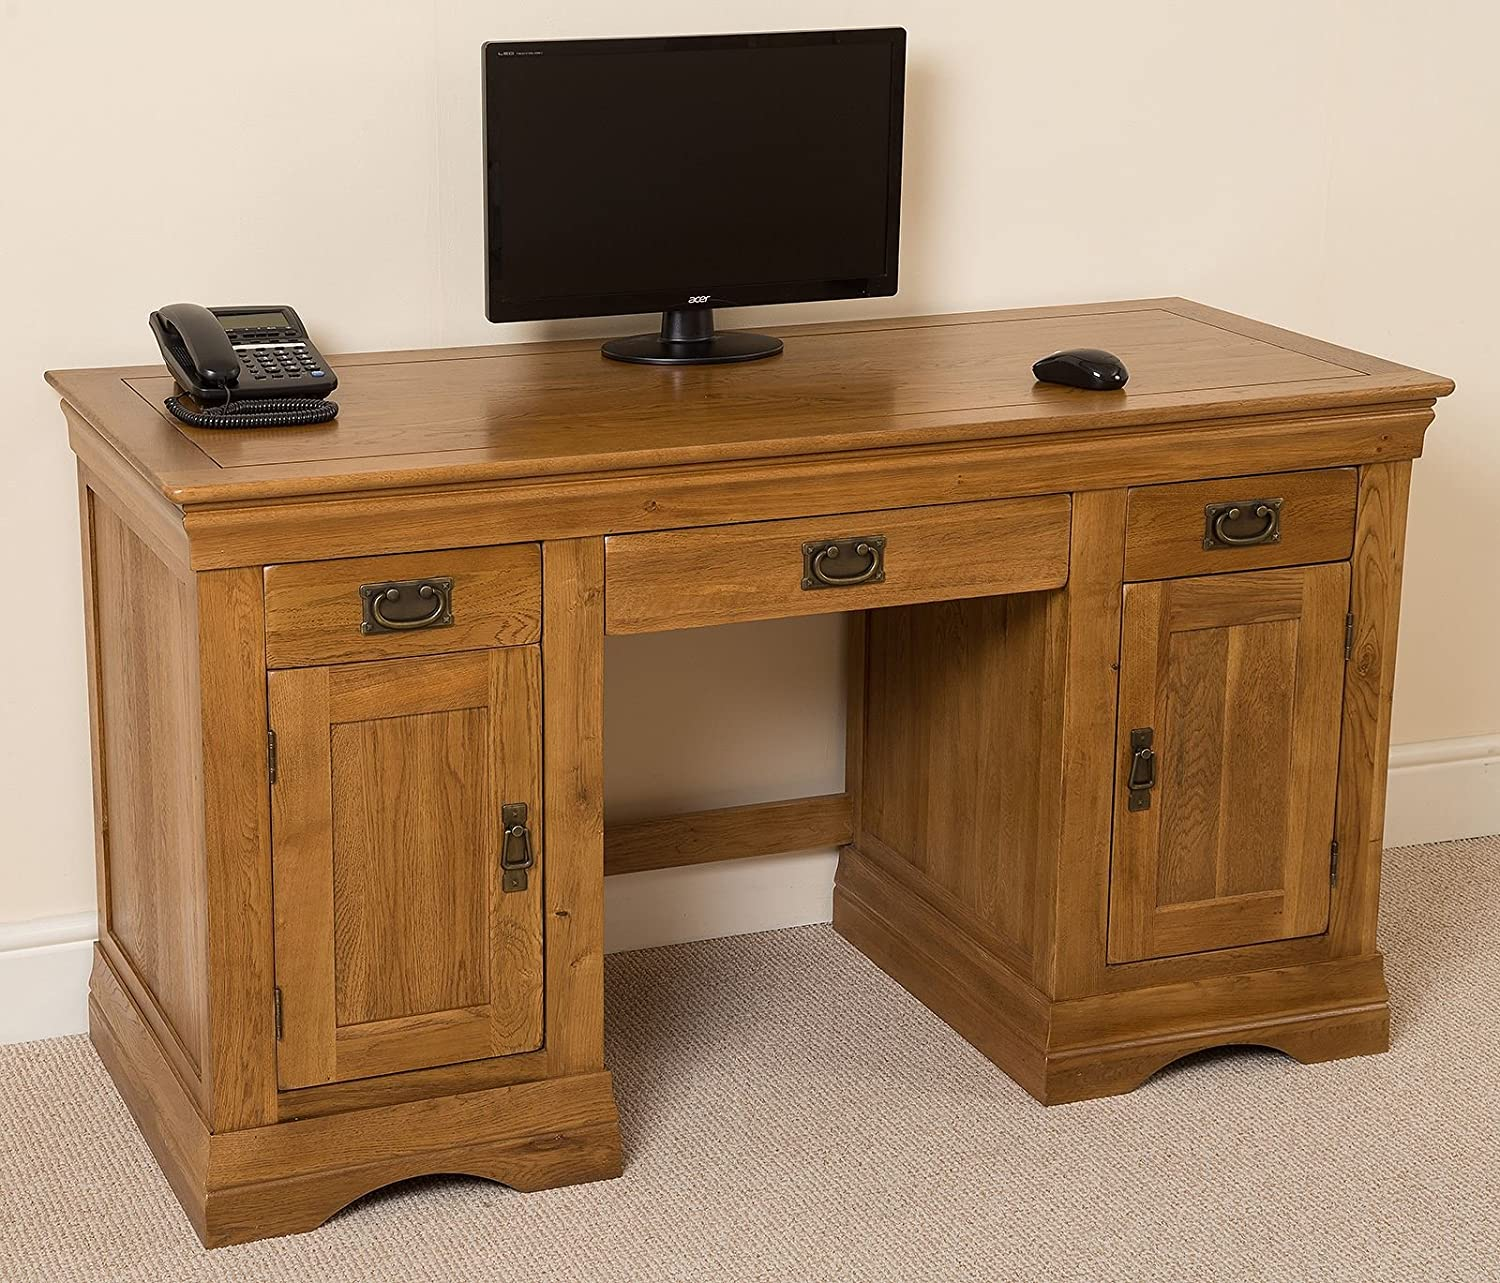 dp desk table winsome wood home computer kitchen ca honey amazon